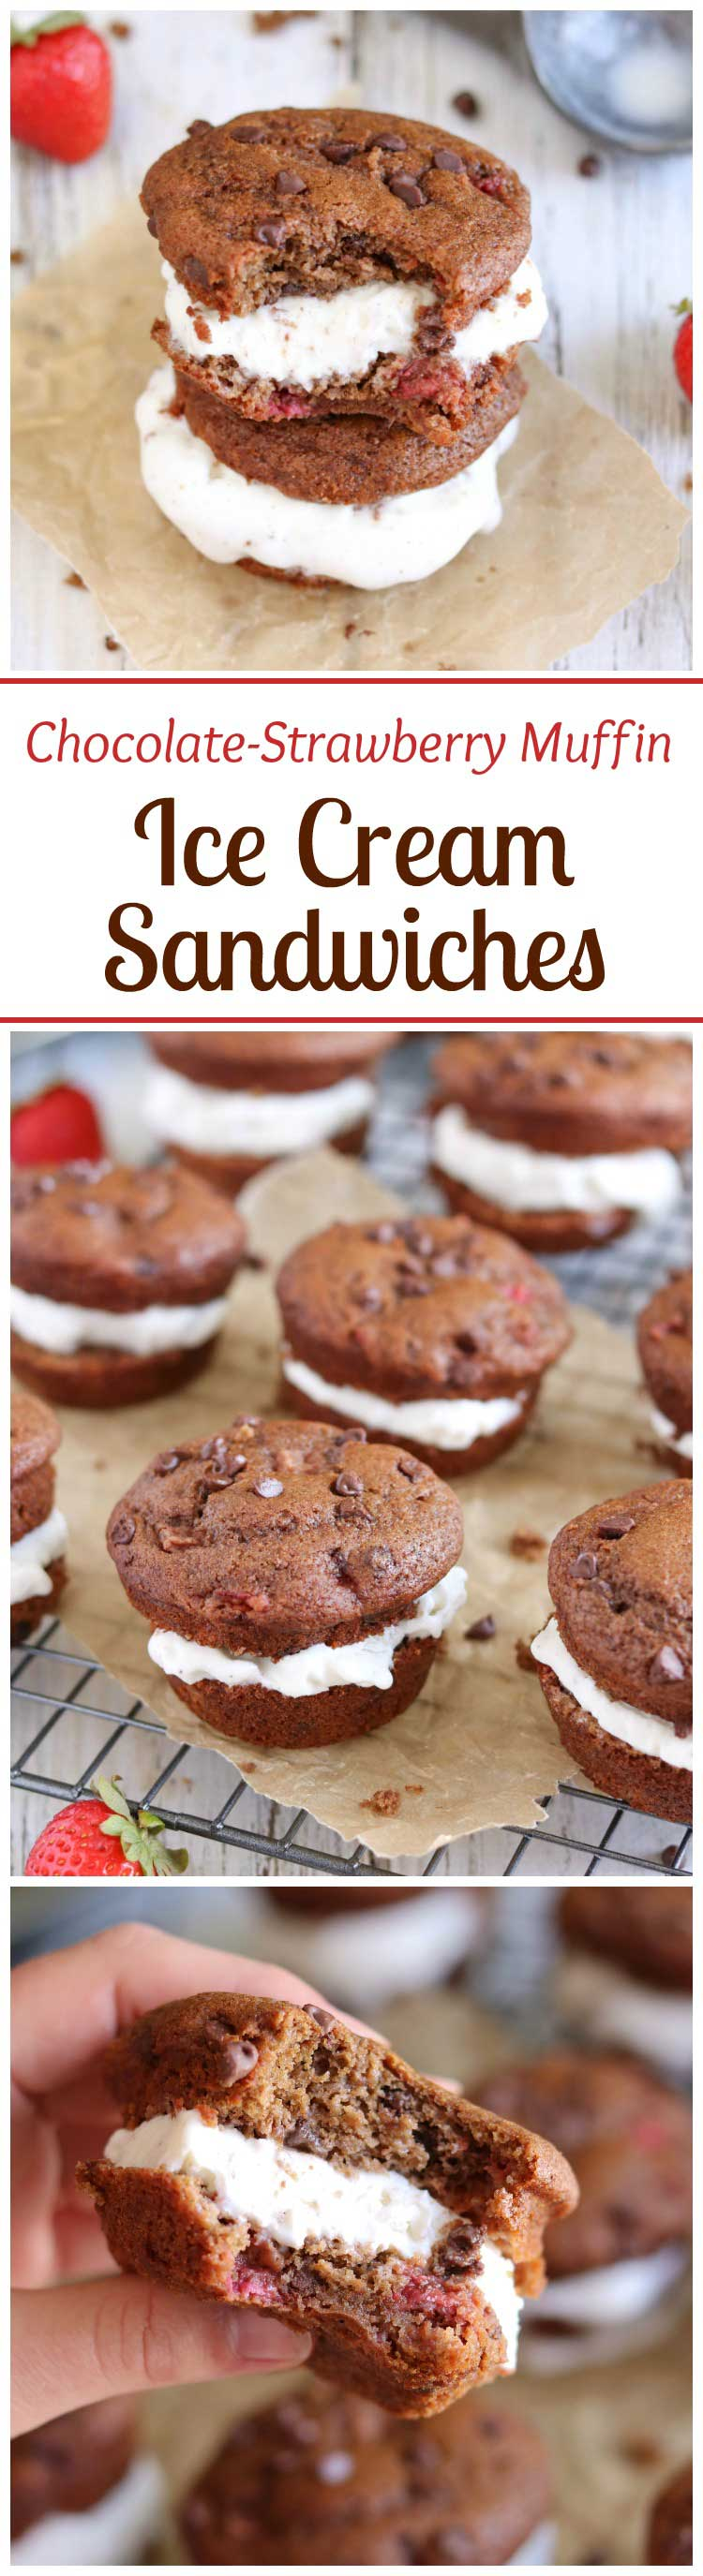 Take delicious, healthy breakfast muffins … add ice cream … and you've got a decadent dessert! Muffin ice cream sandwiches! Bursting with fresh strawberries and double chocolate! One batch of muffins = two great recipes! | www.TwoHealthyKitchens.com